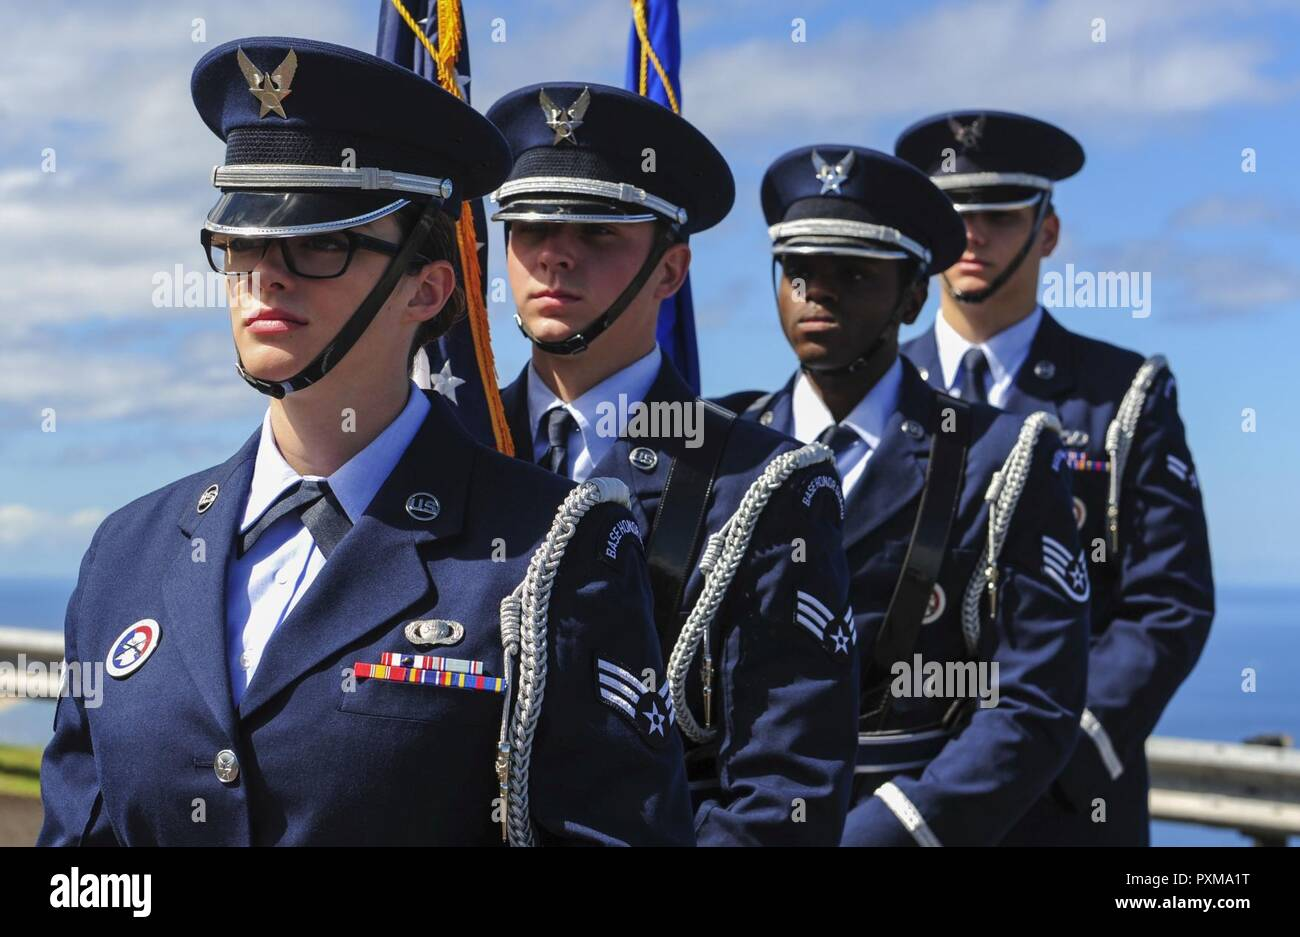 Joint Base Pearl Harbor-Hickam Honor Guard prepares to post the colors during the Detachment 3 Change of Command Ceremony, Kaena Point, Hawaii, June 9, 2017.  Detachment 3 is a component of the 21st Space Operations Squadron, 50th Network Operations Group, 50th Space Wing, and is located on the western tip of Oahu.  It is the oldest and one of seven worldwide remote tracking stations in the Air Force Satellite Control Network. - Stock Image